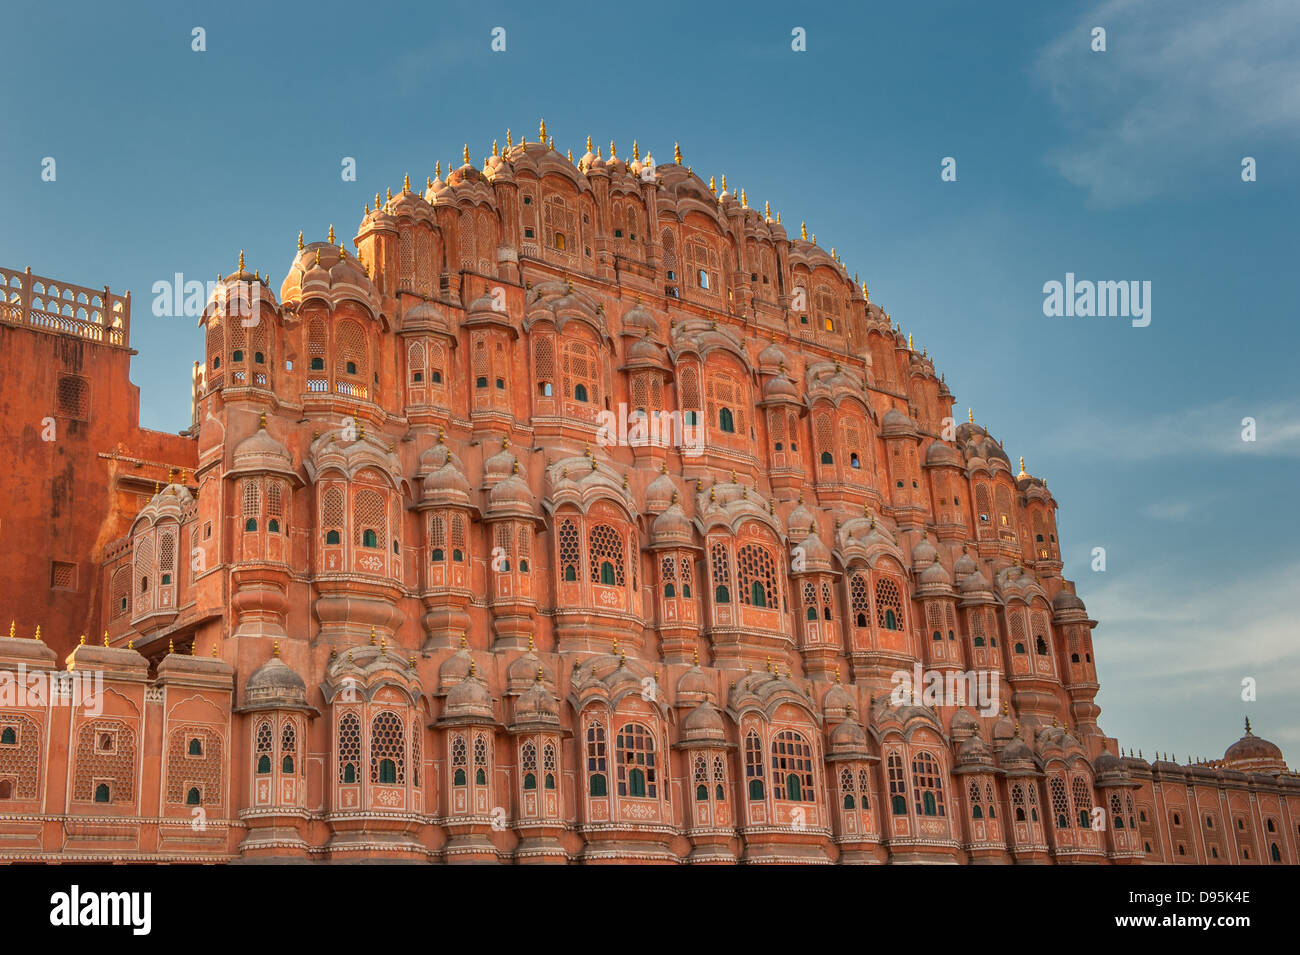 Hawa Mahal, le palais des vents, Jaipur, Inde Photo Stock